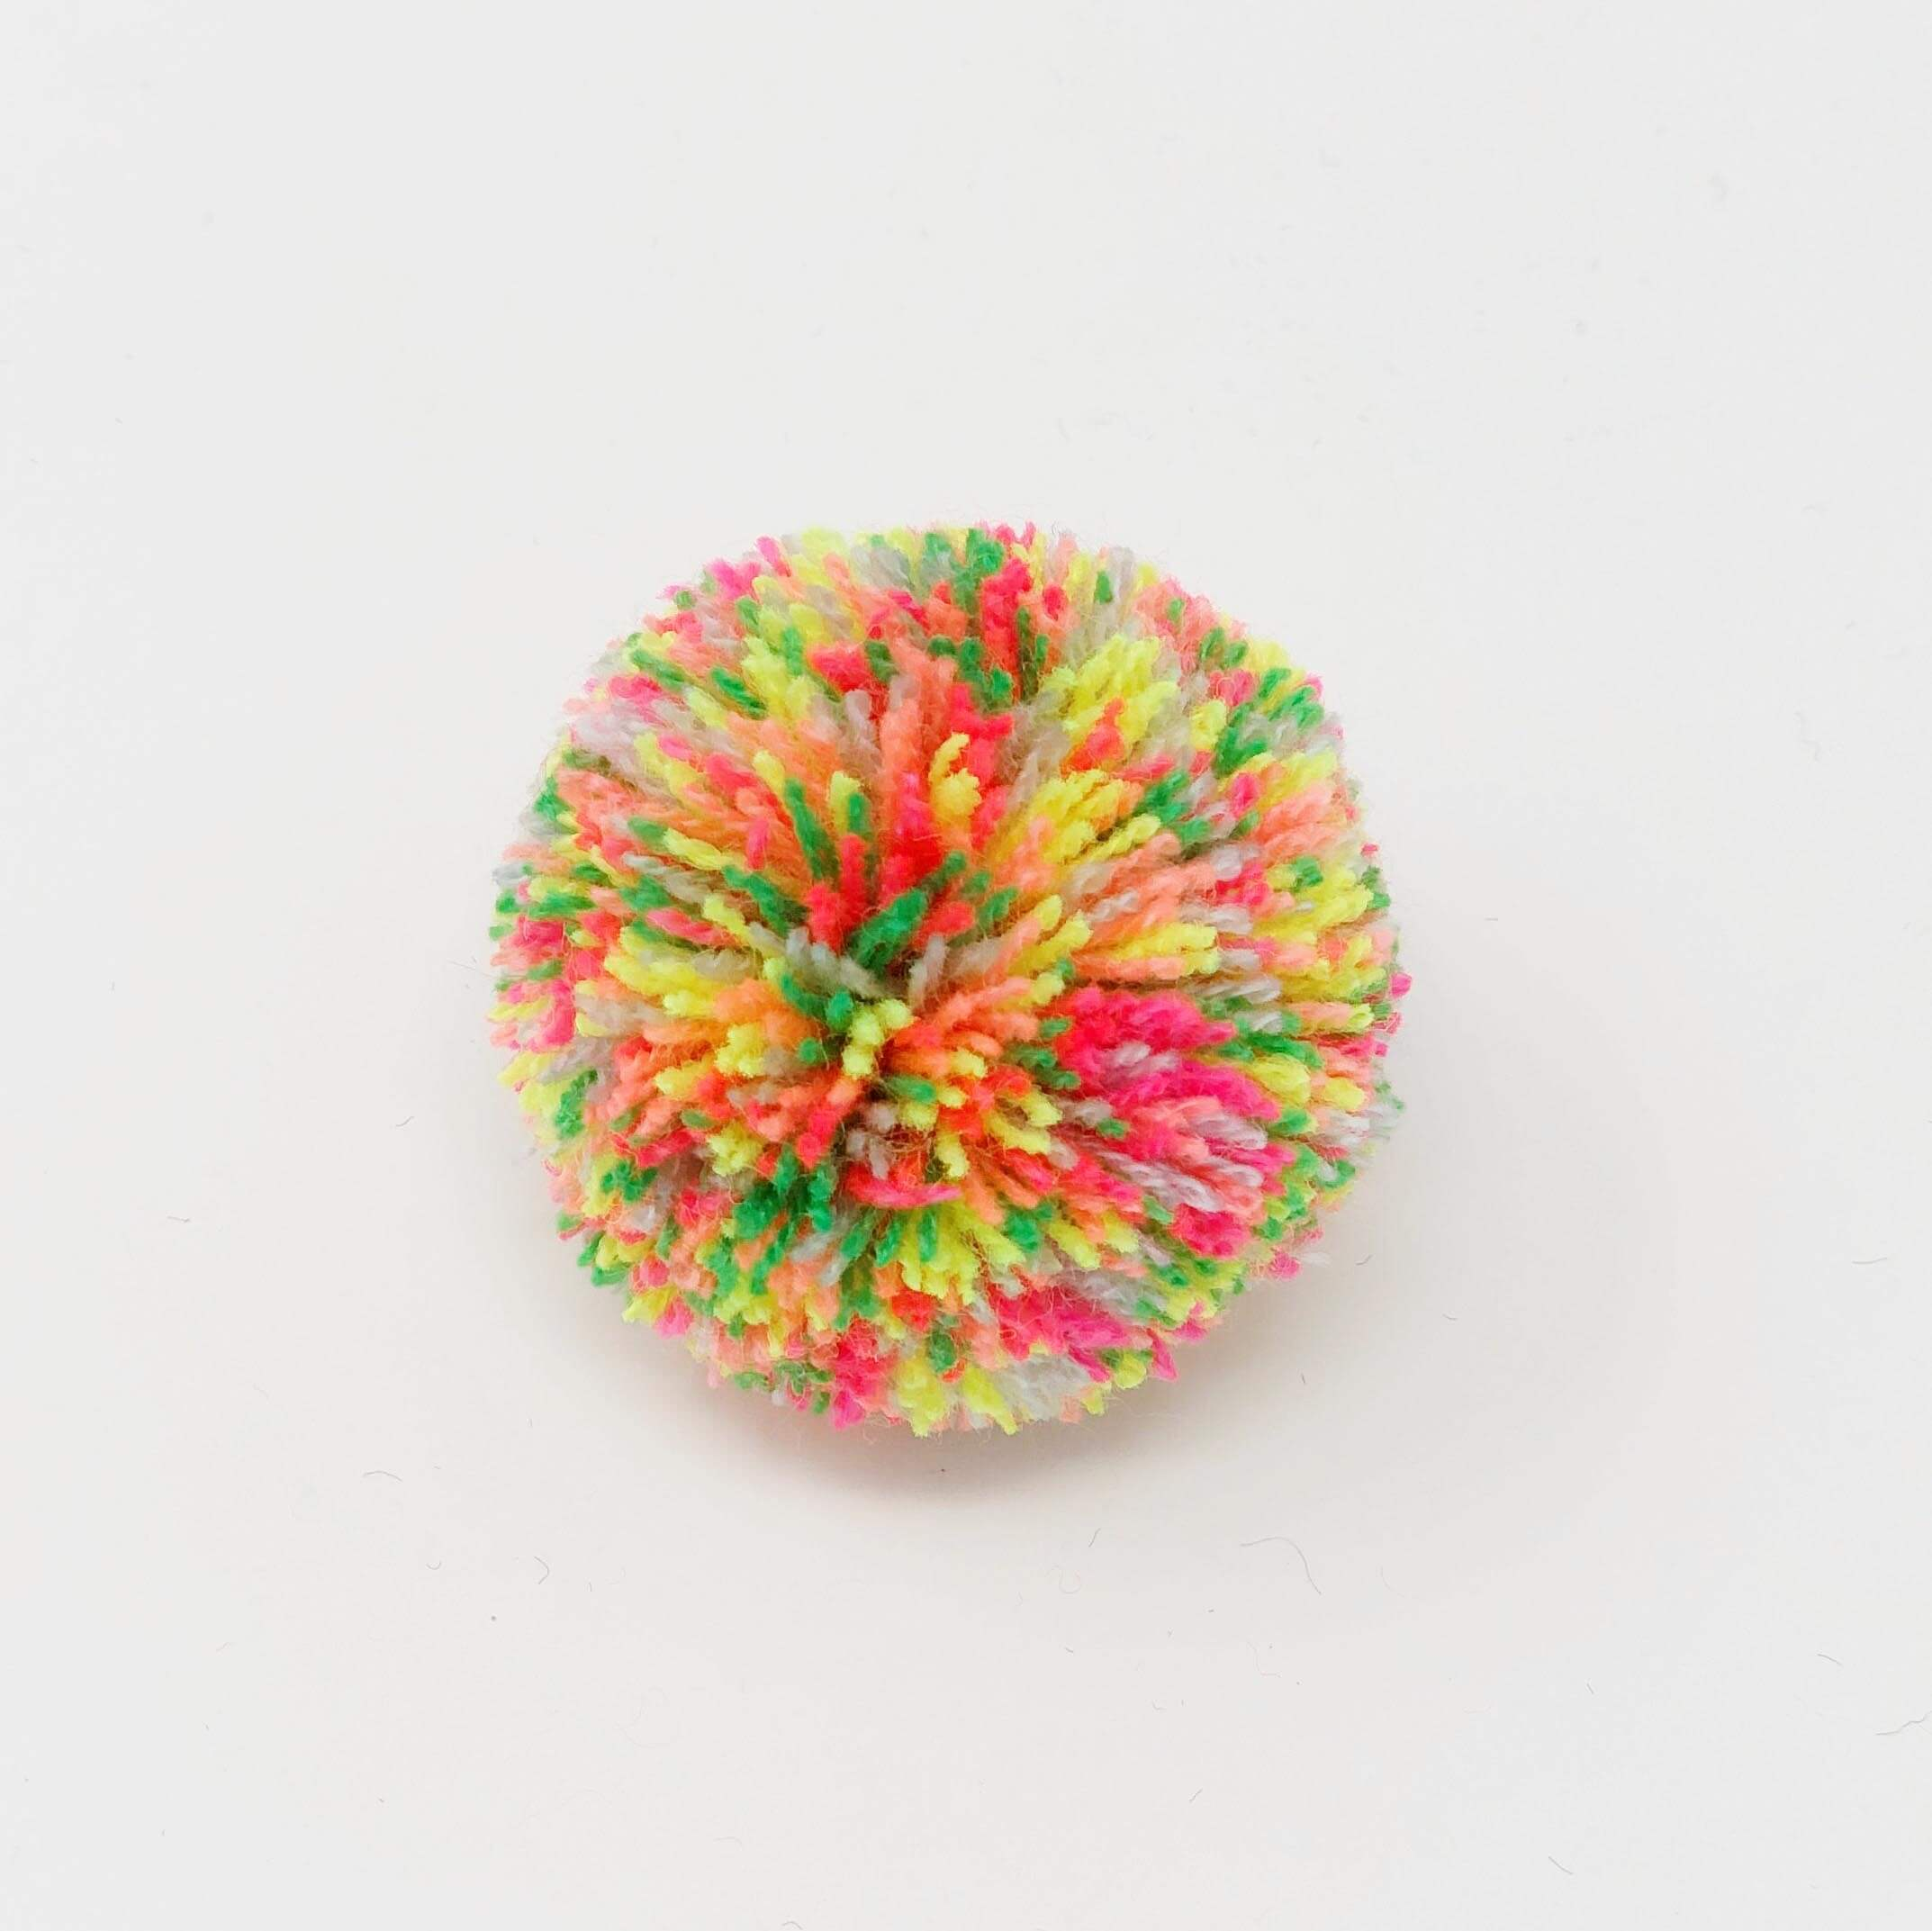 How to Make a Sprinkled Pom Pom